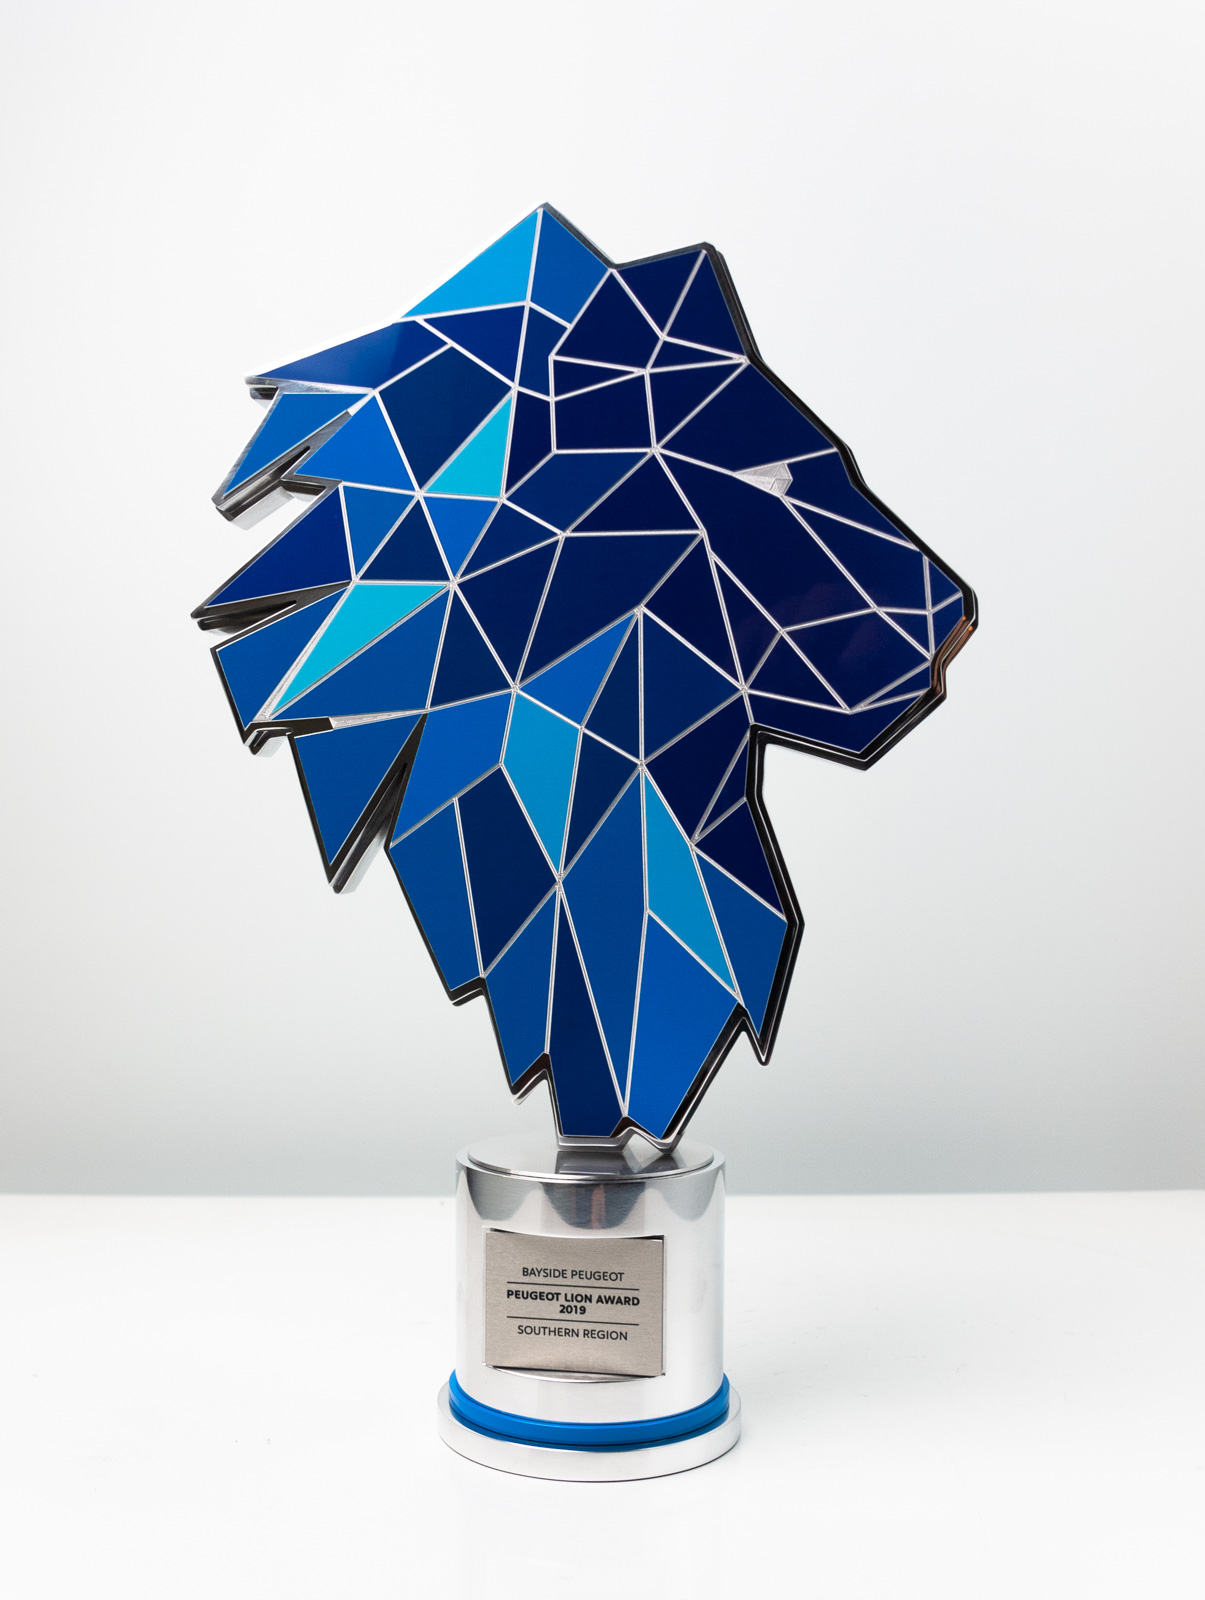 The Peugeot Dealer of the Year Award Trophy Lion Award